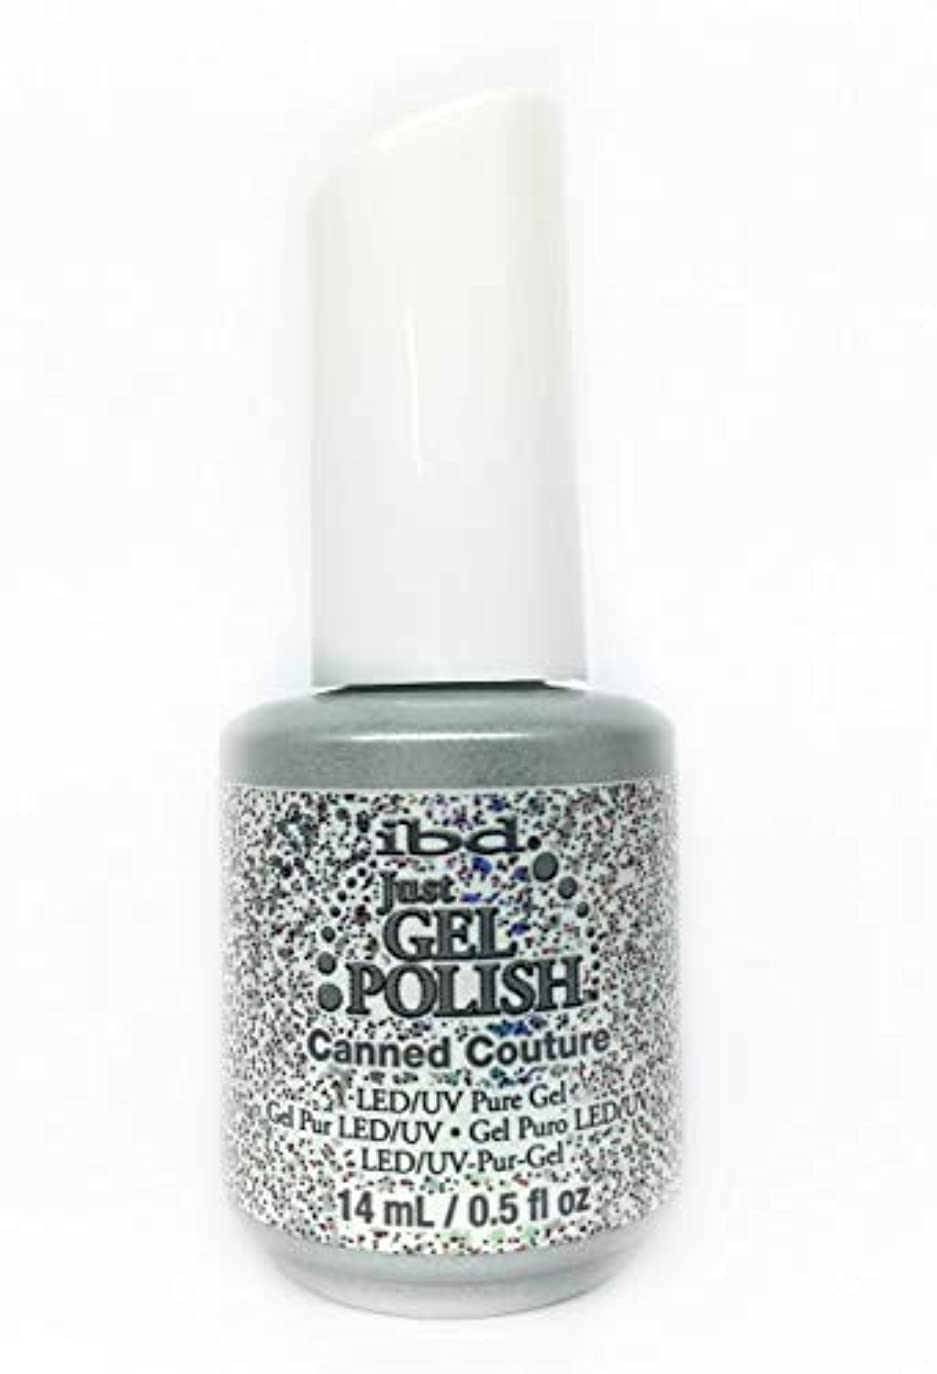 ホバートマウスピース大通りibd Just Gel Nail Polish - Canned Couture - 14ml / 0.5oz